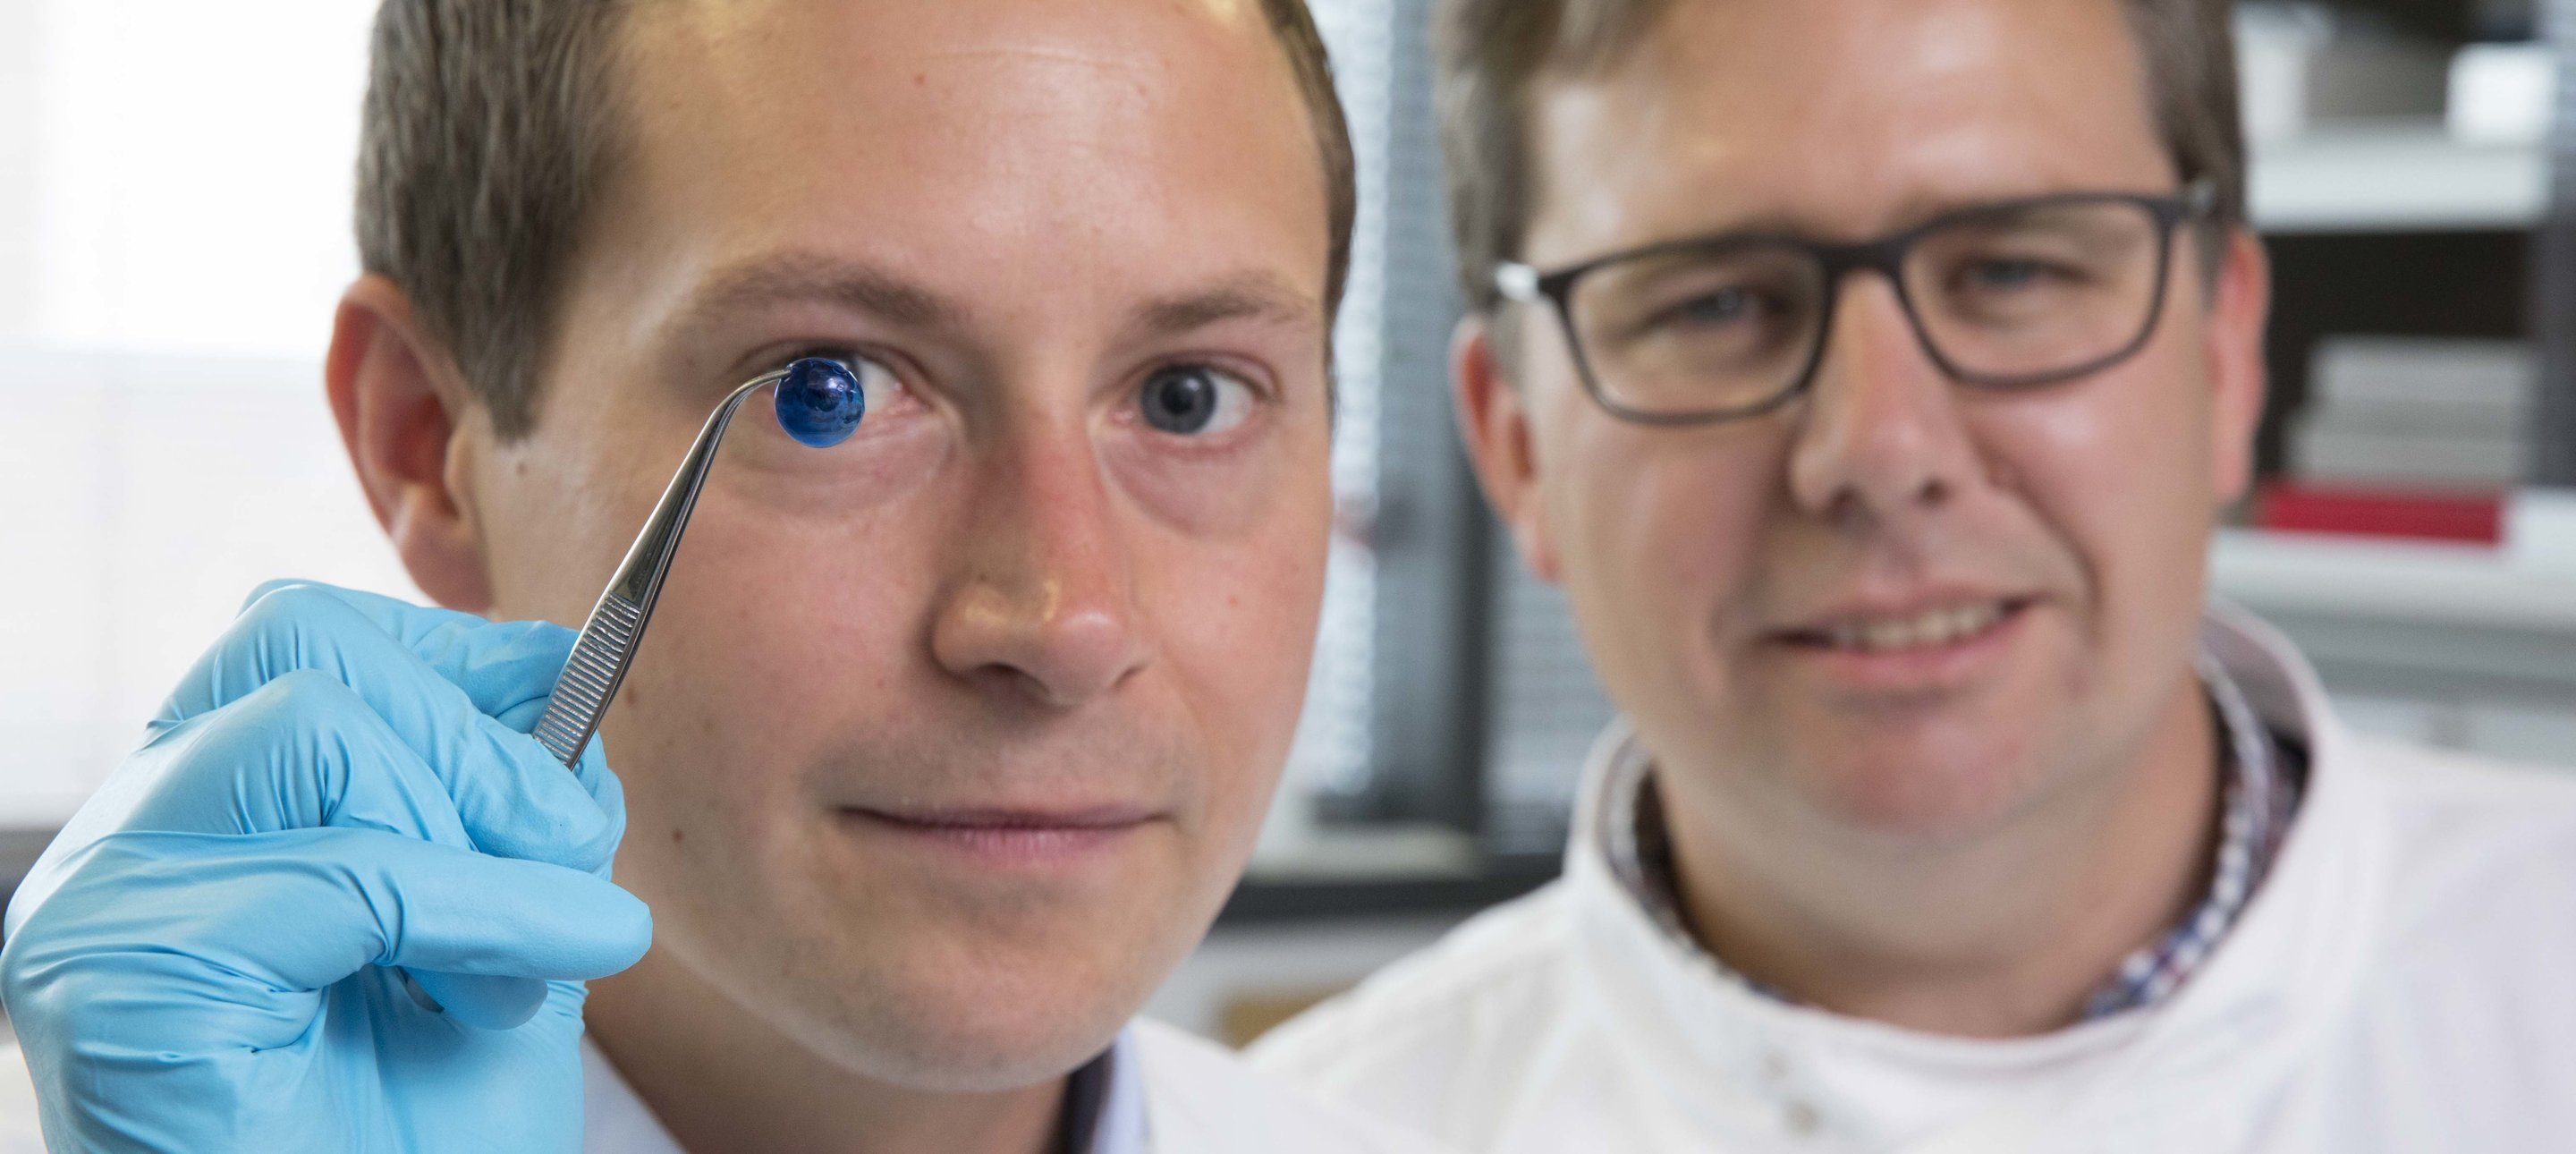 These 3D printed corneas could save millions from going blind